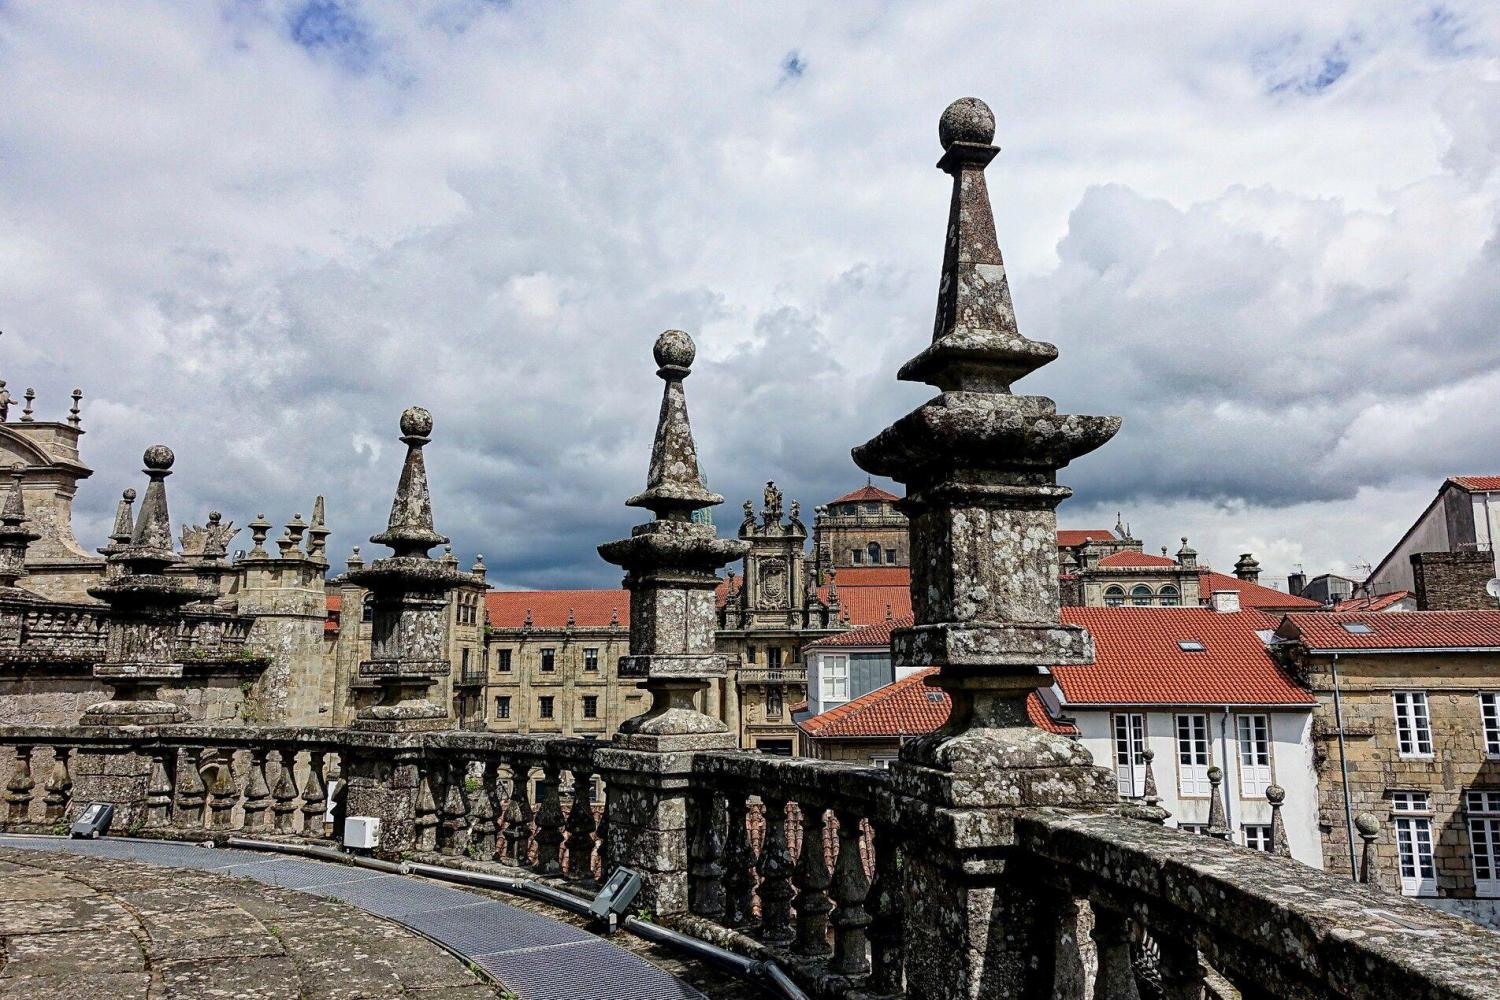 Make the journey that millions have made before you to Santiago de Compostela